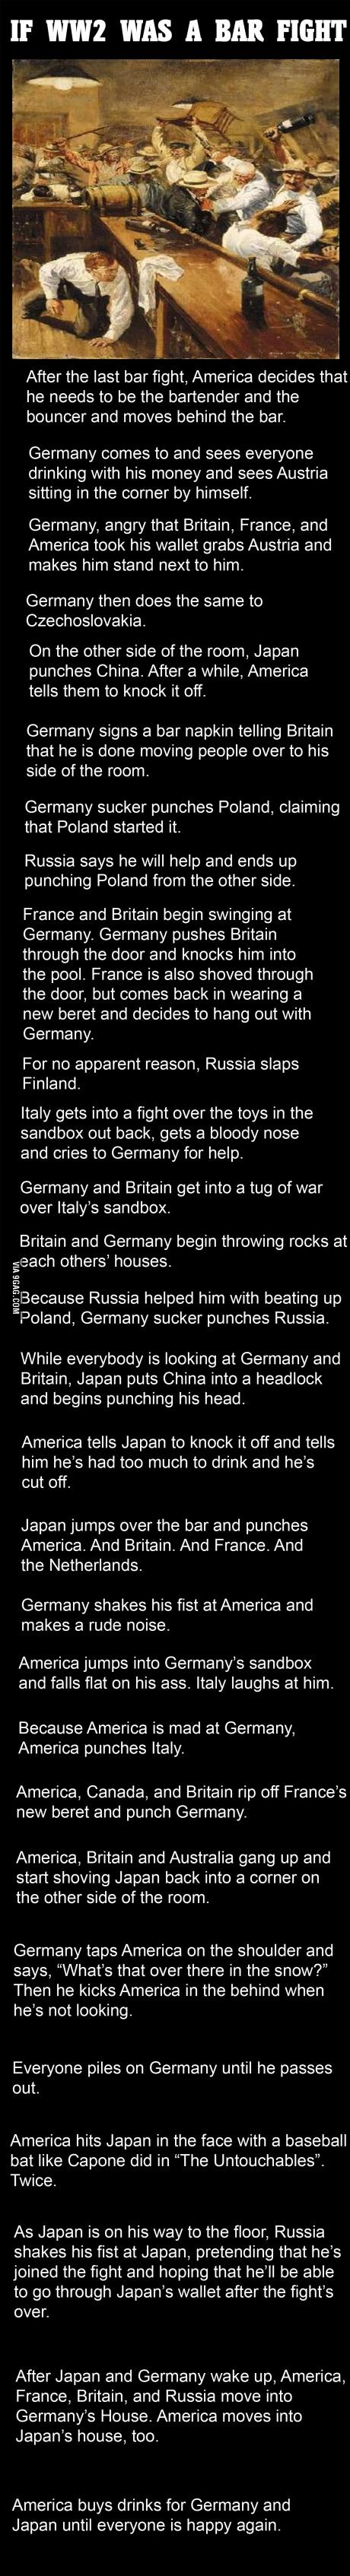 If World War 2 Was A Bar Fight...Slapping Finland for no apparent reason!